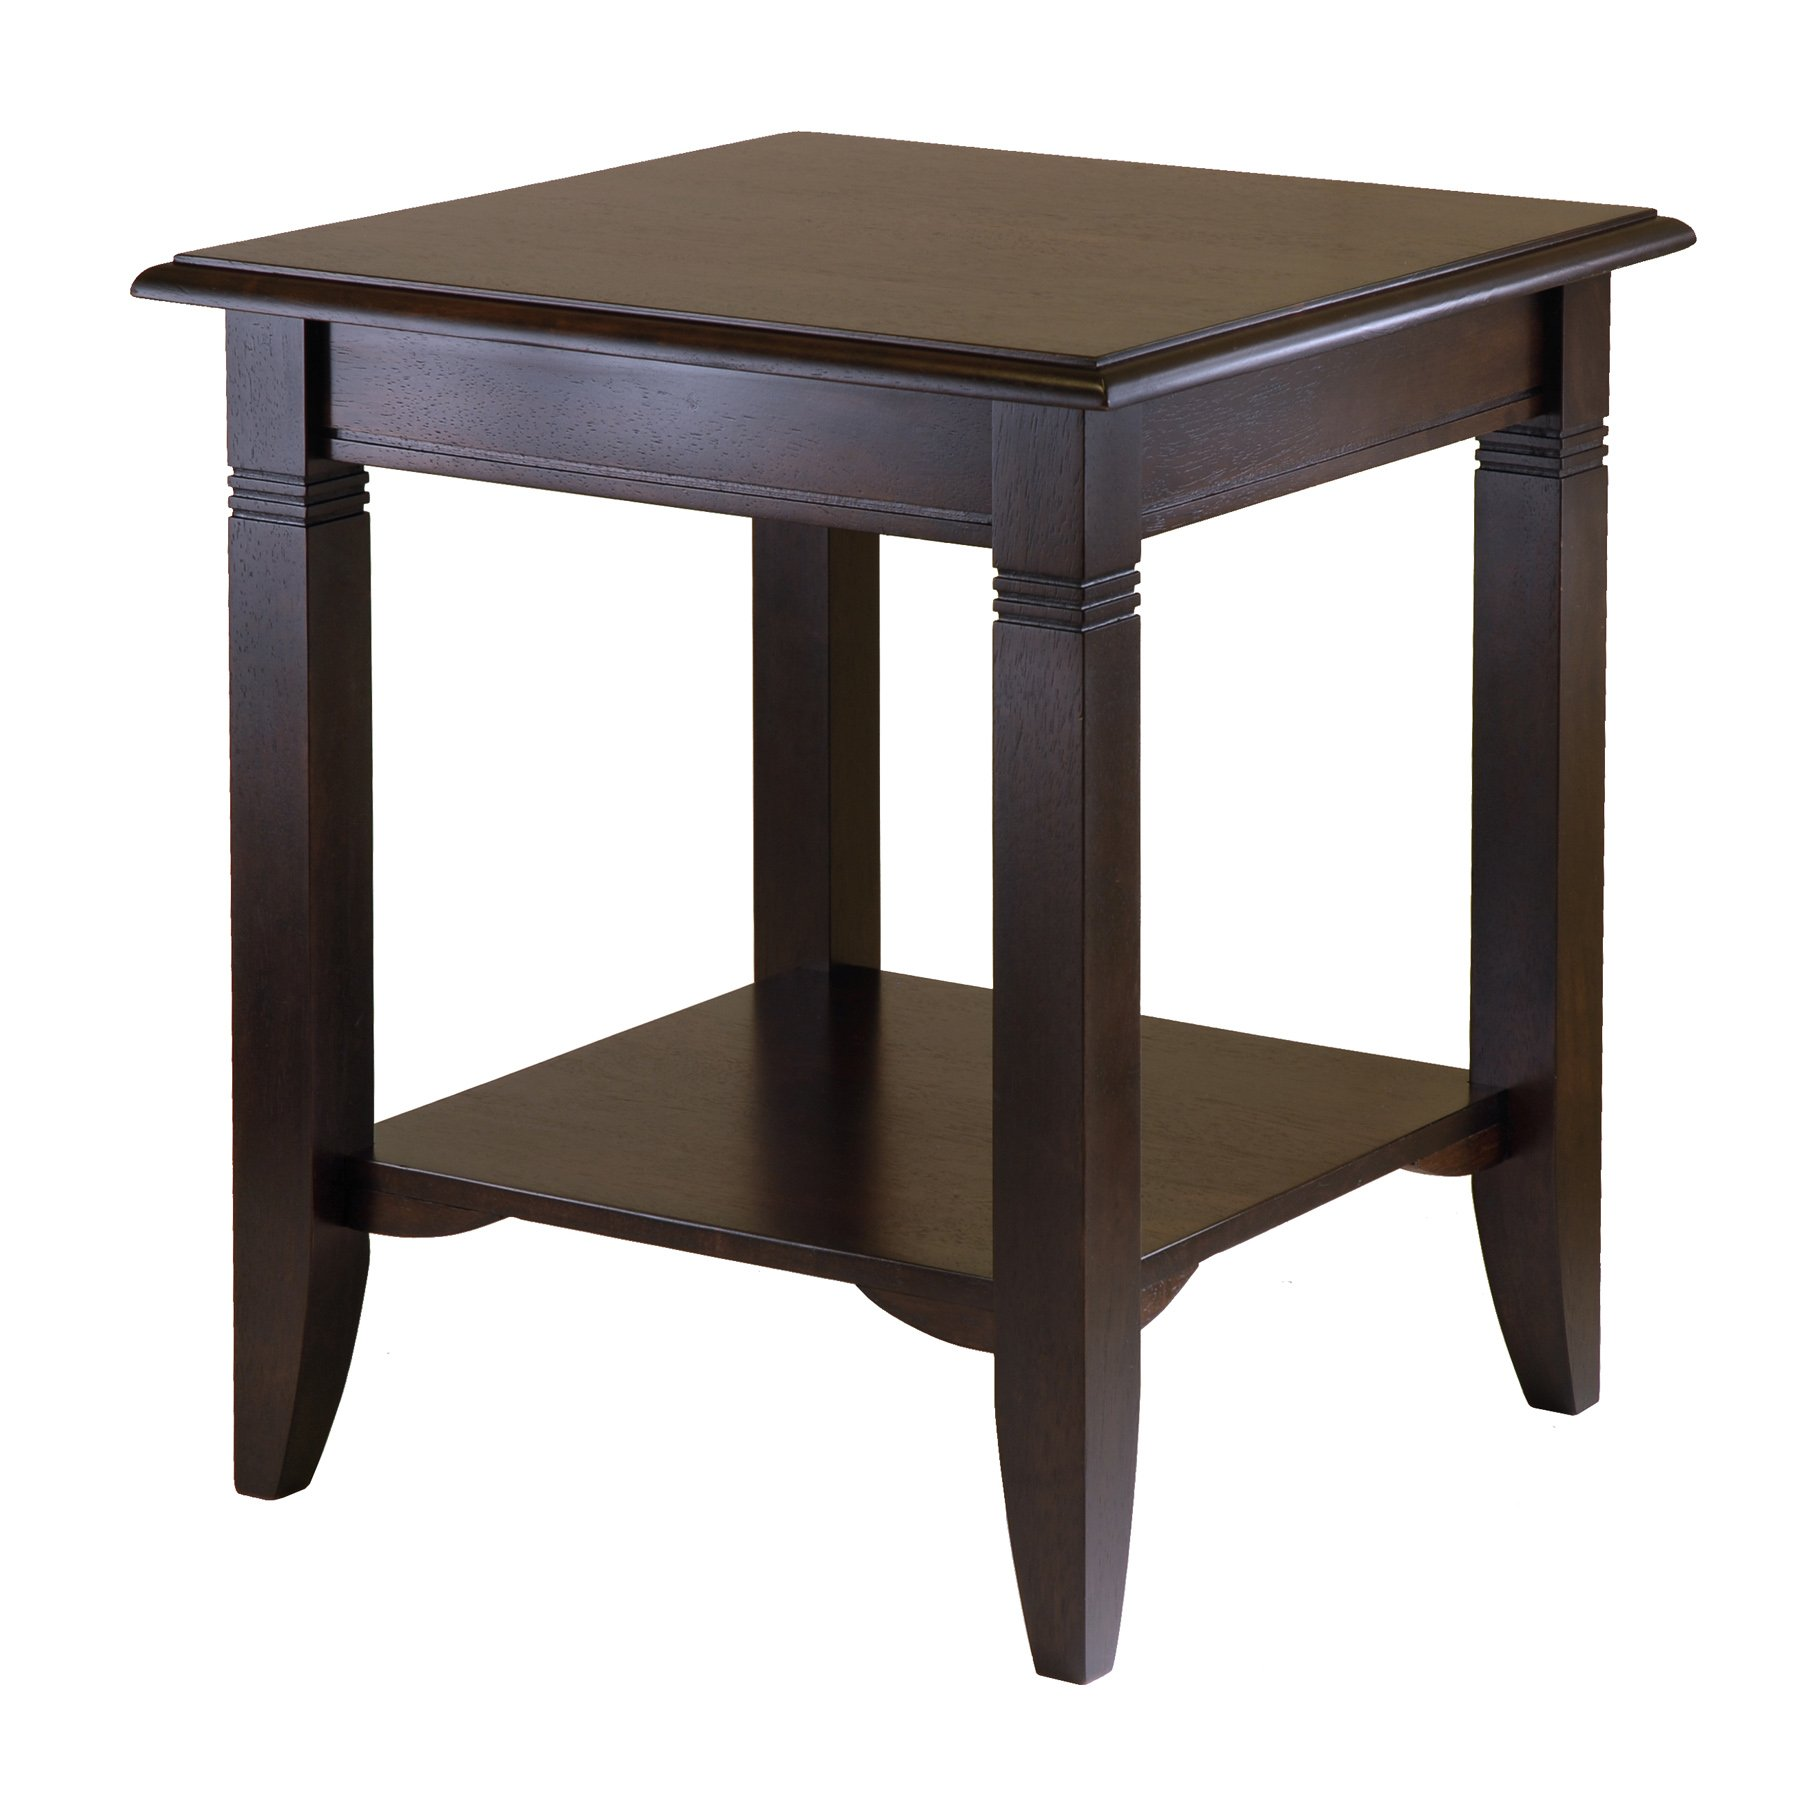 Winsome Wood Nolan End Table by Winsome Wood (Image #1)